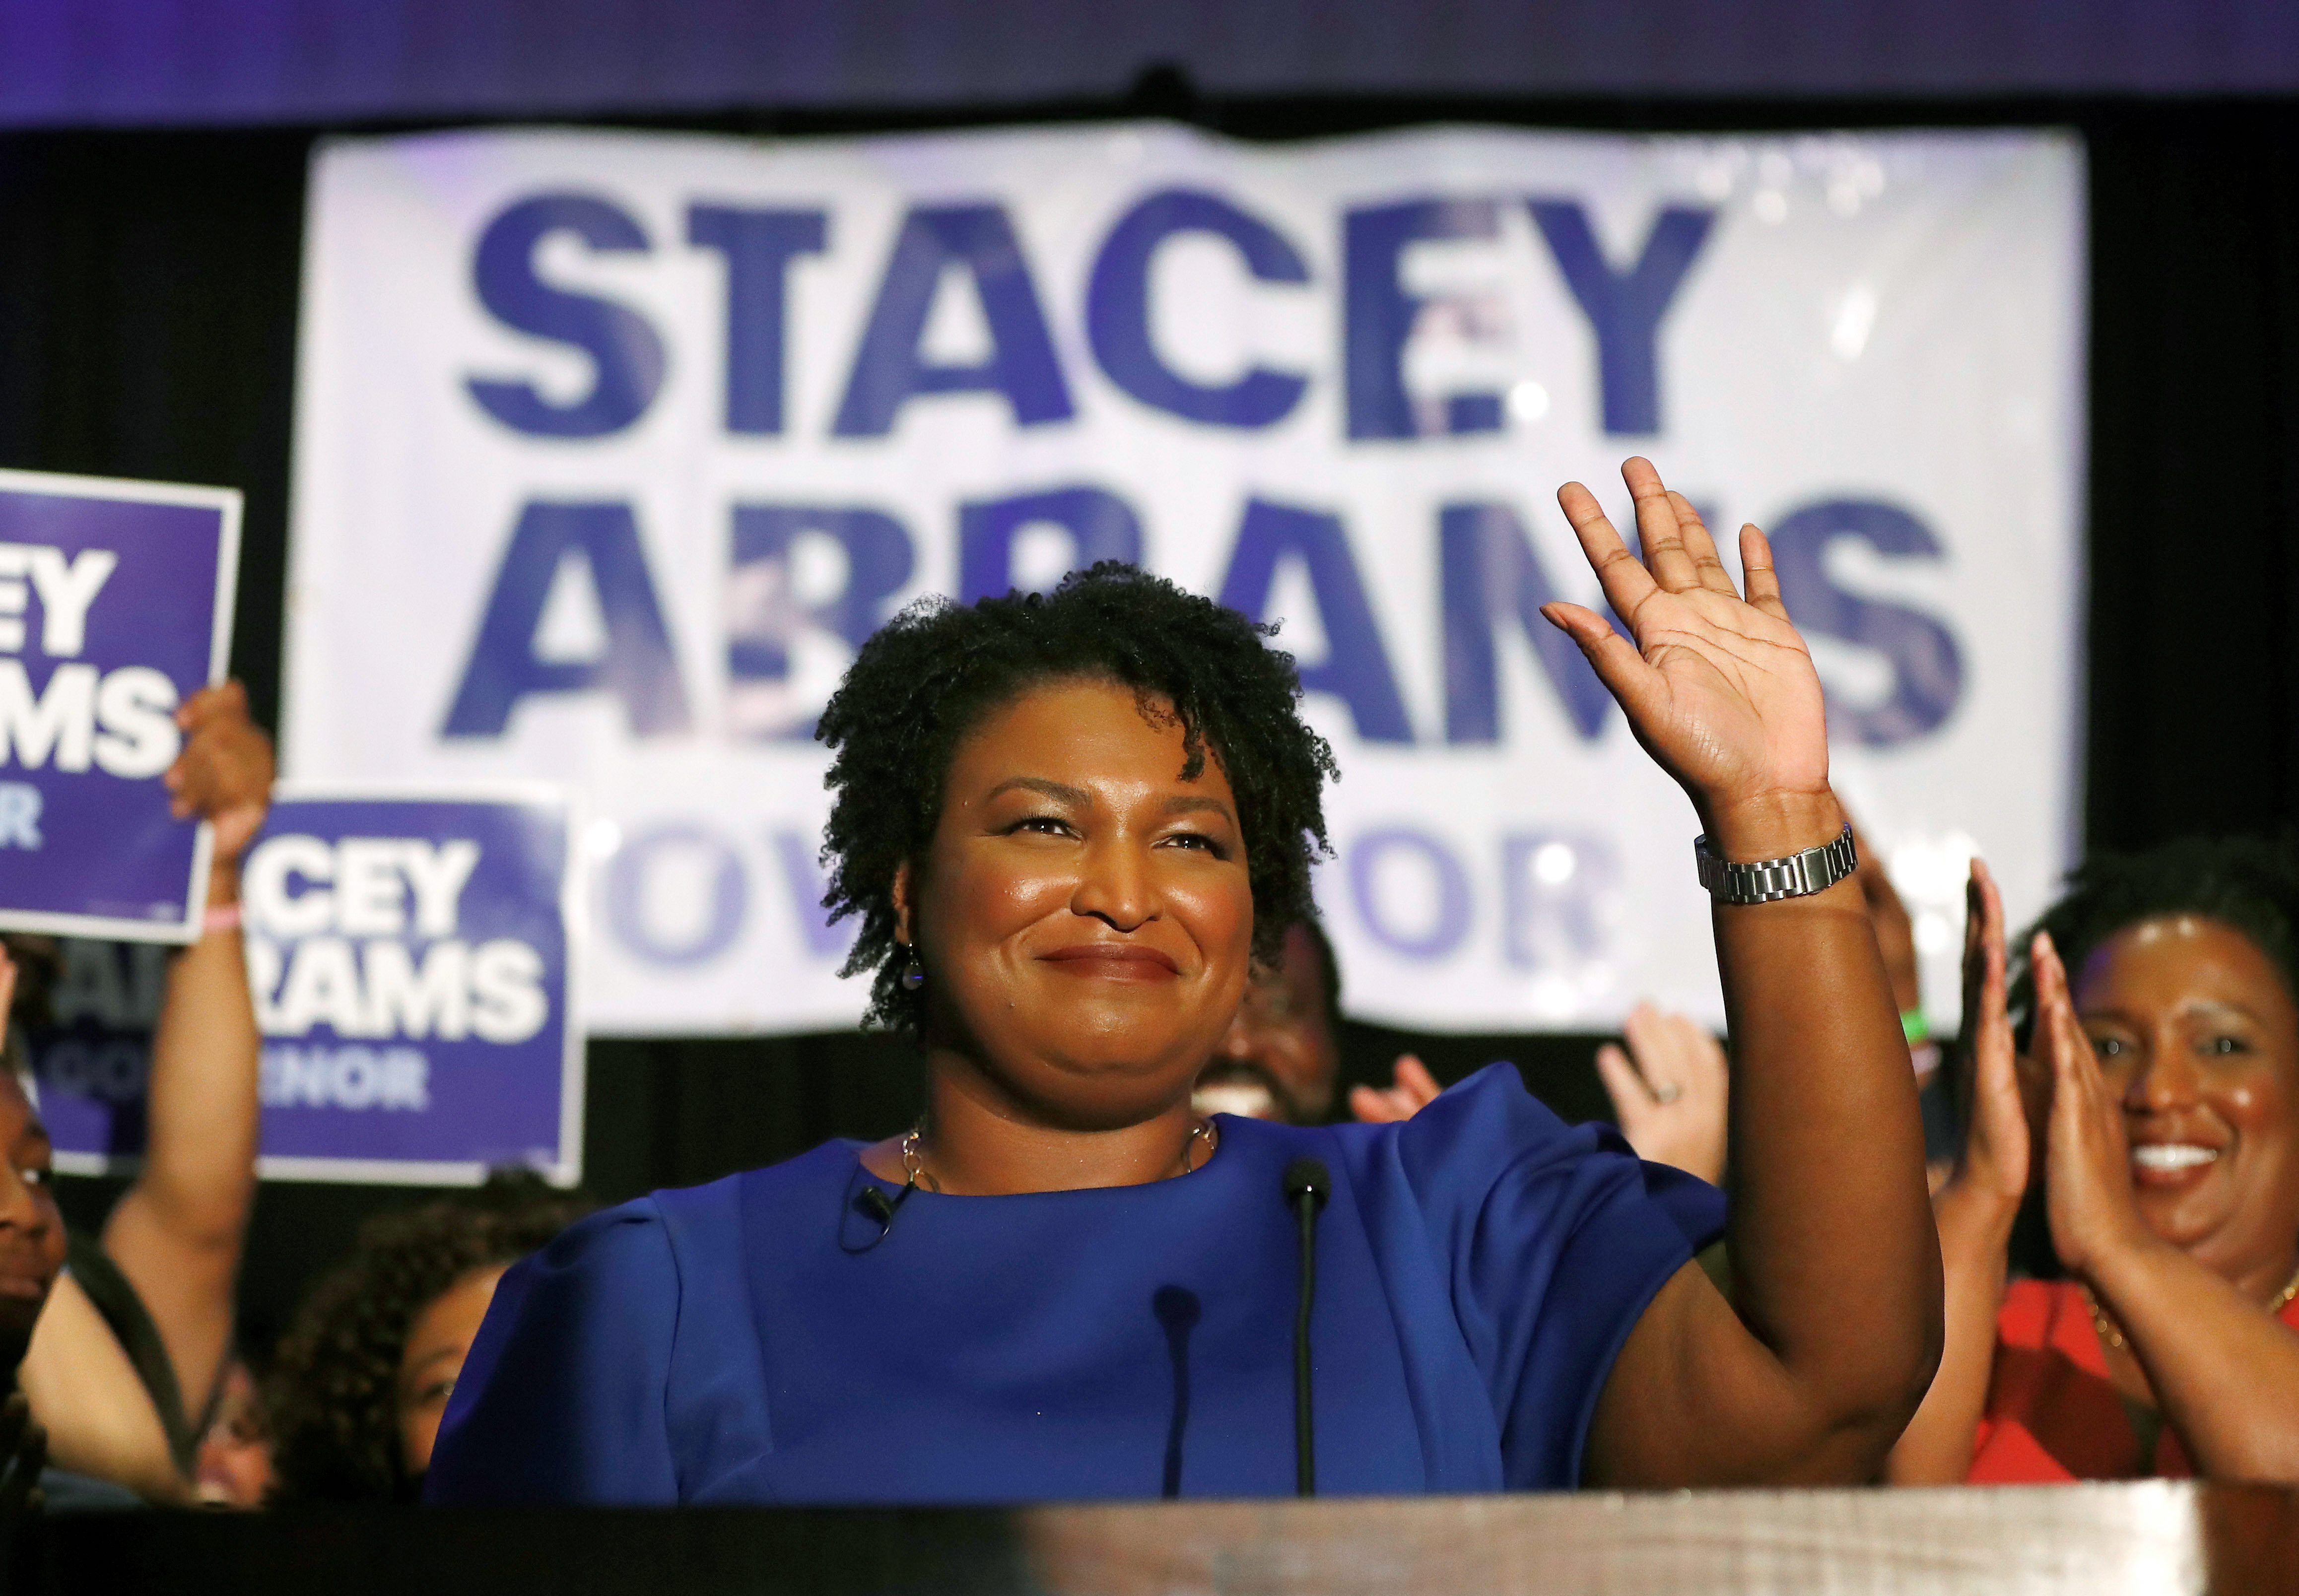 Trump: Stacey Abrams will get rid of the Second Amendment if elected picture